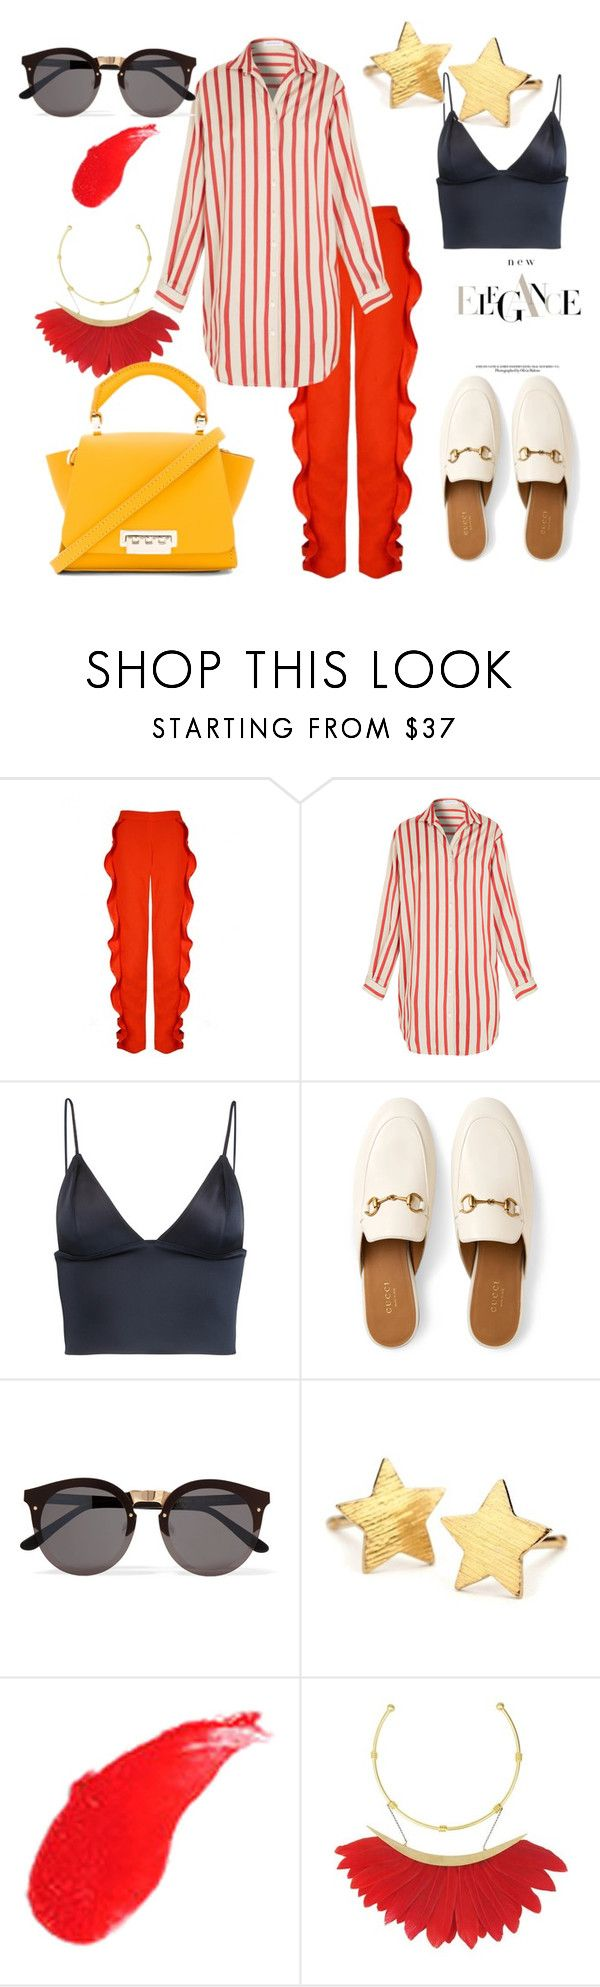 """New Elegance #2"" by mary-en ❤ liked on Polyvore featuring Christopher Esber, T By Alexander Wang, Gucci, Illesteva, Pernille Corydon, Yves Saint Laurent, ZAC Zac Posen and summerinthecity"